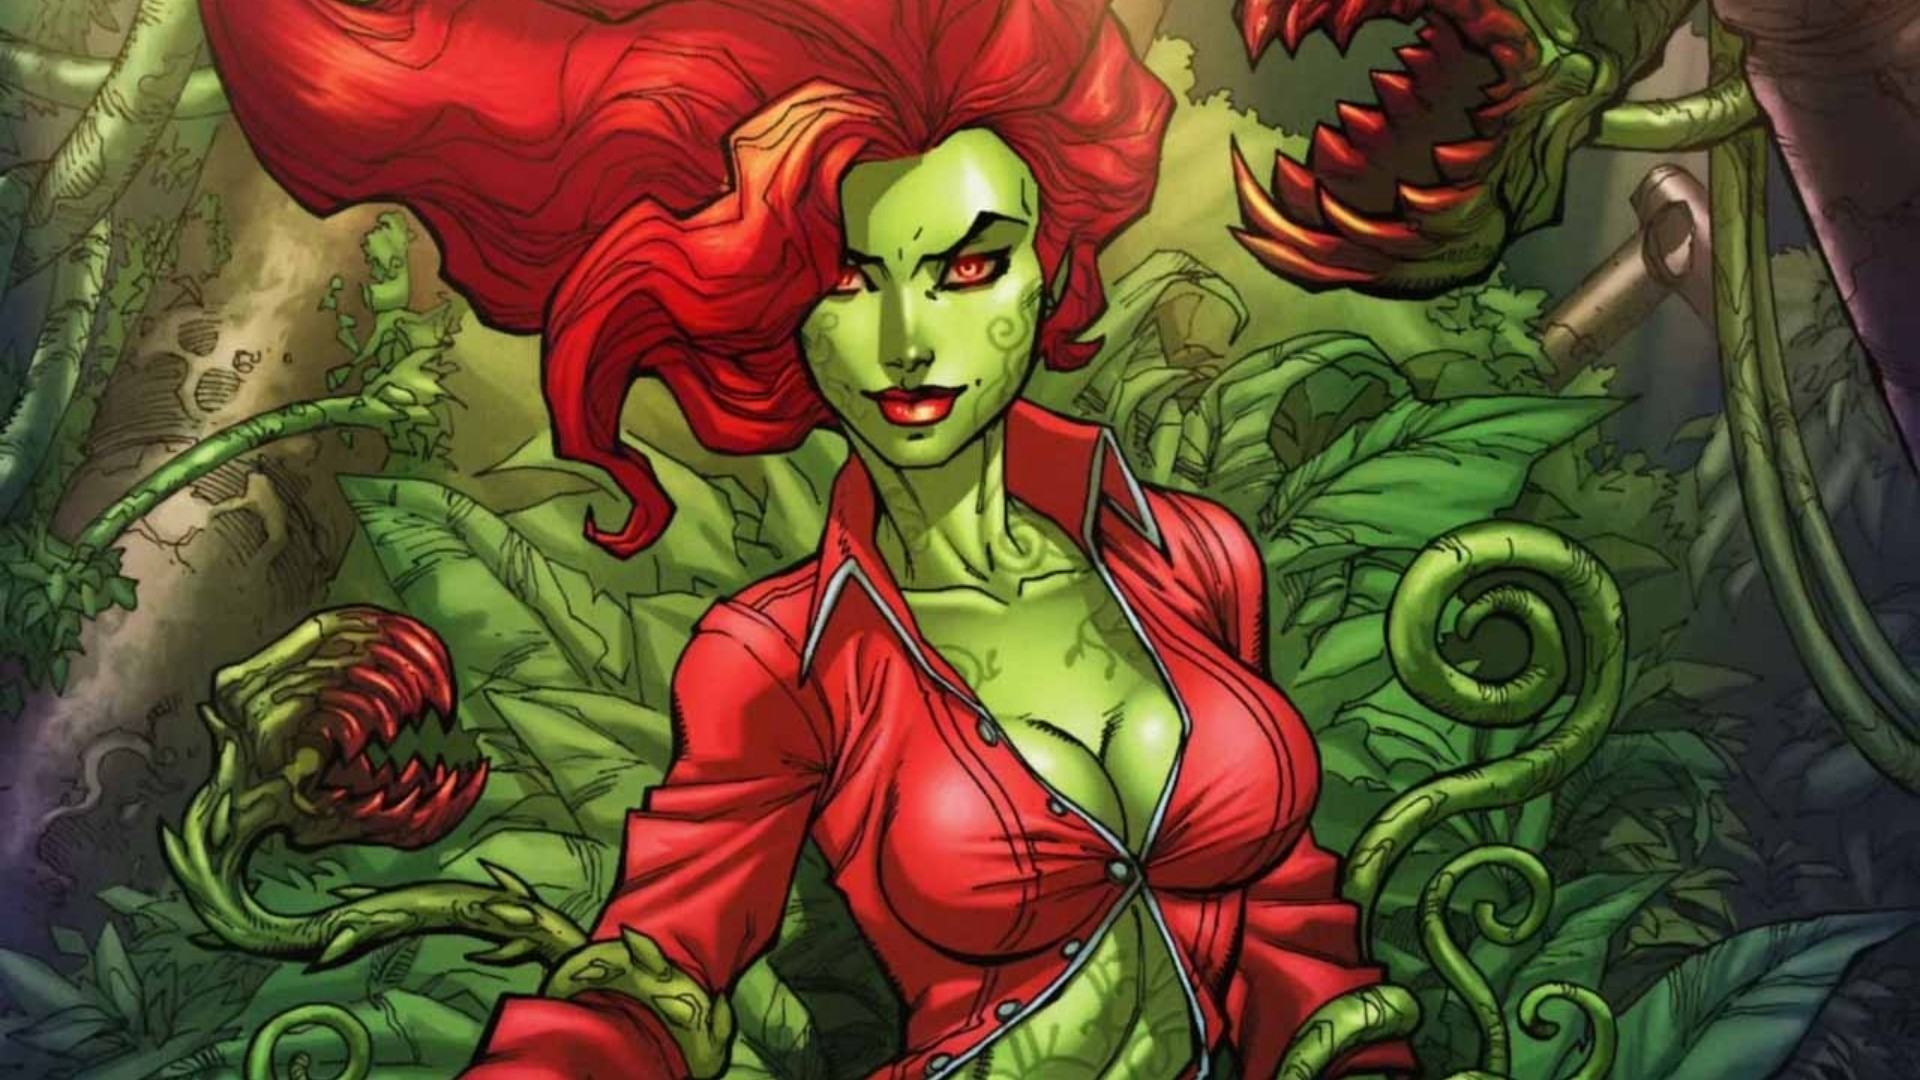 Res: 1920x1080, Poison Ivy Full HD Wallpaper